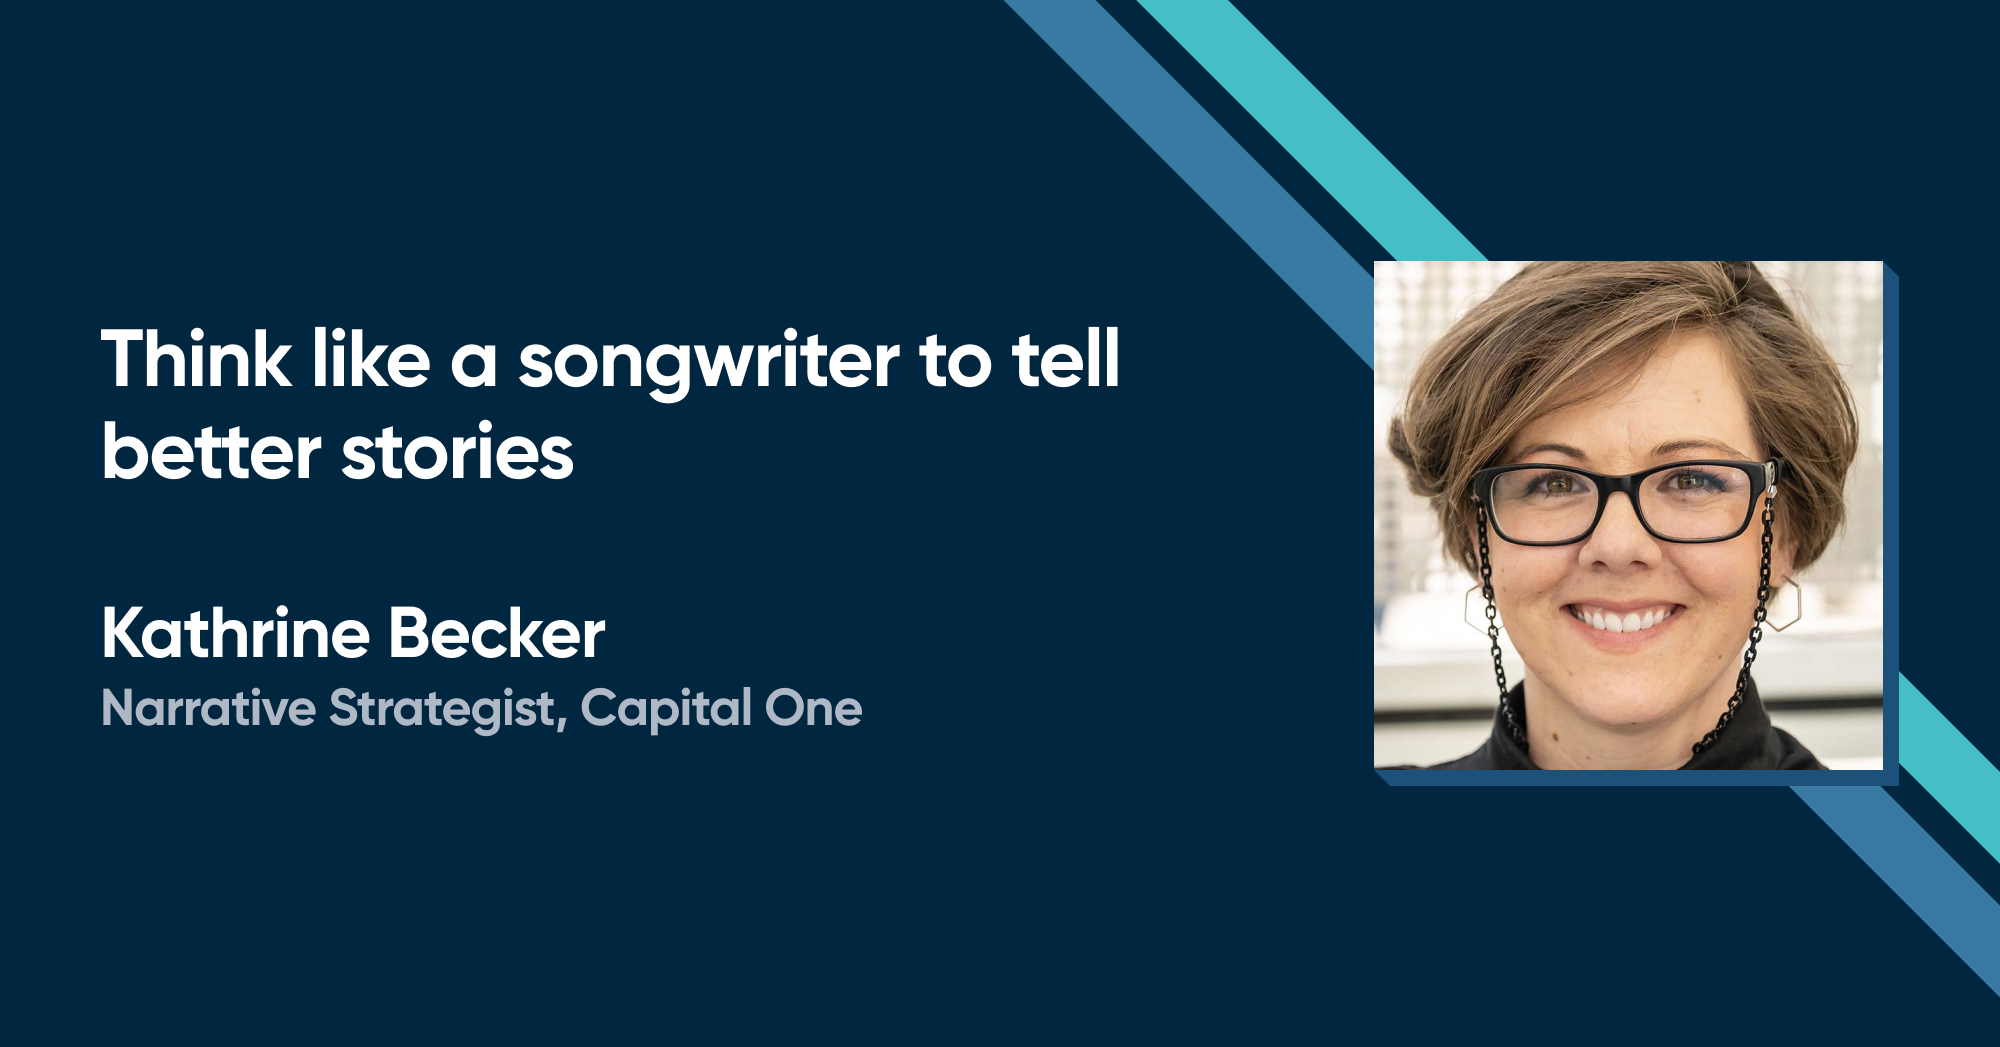 Kathrine Becker - Think like a songwriter to tell better stories